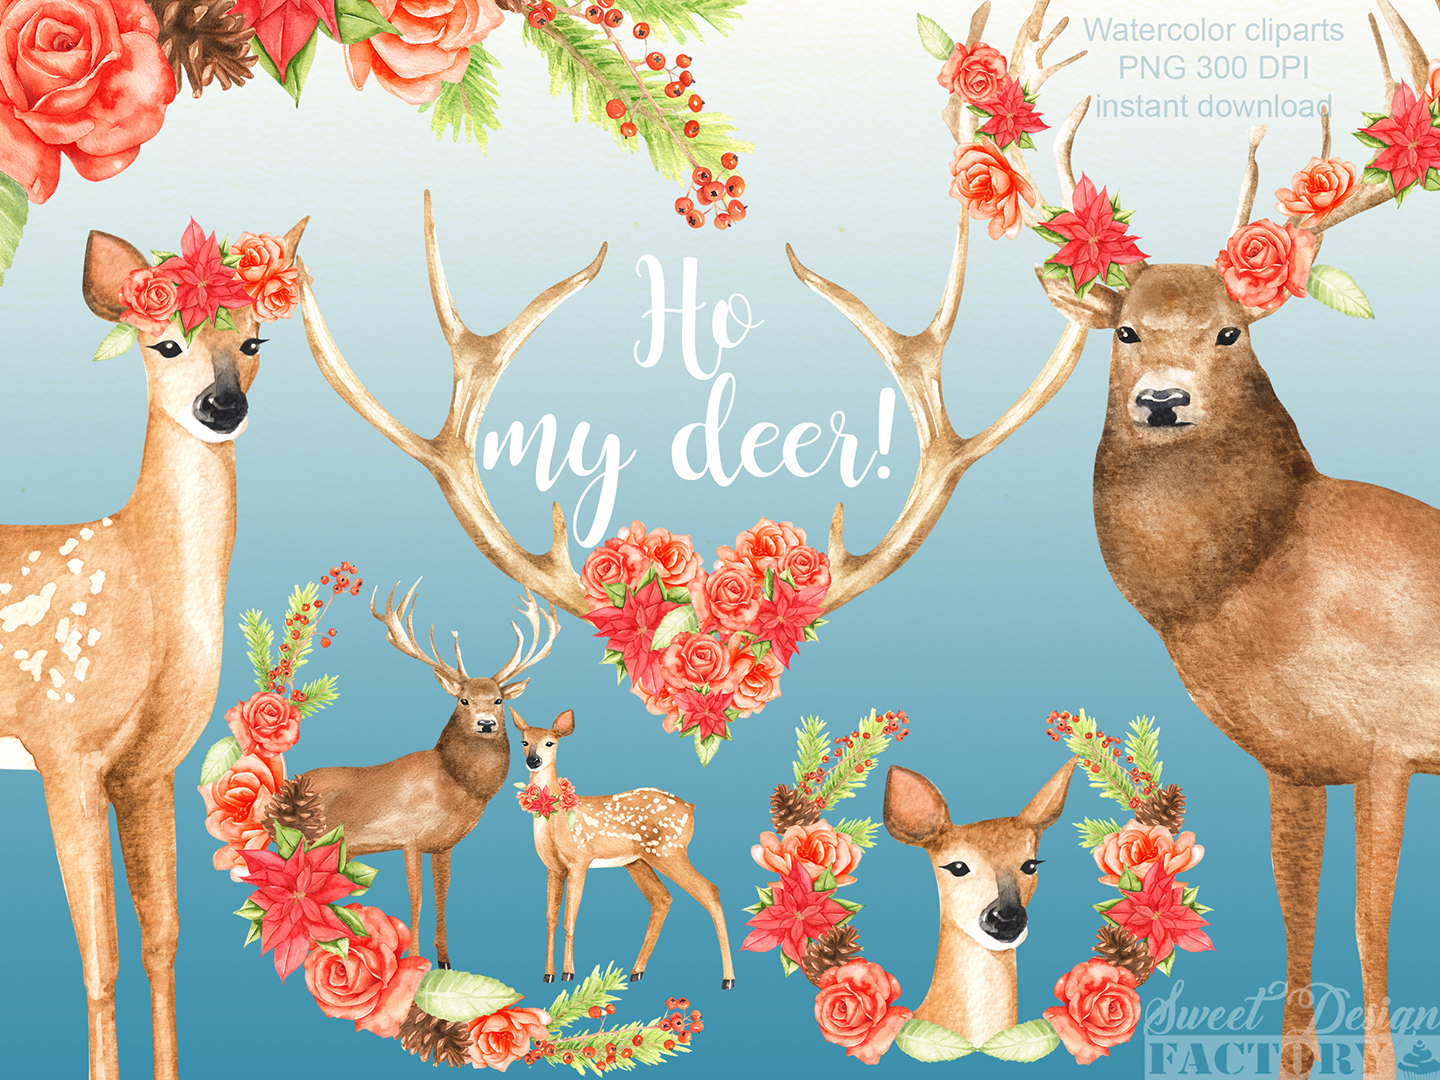 Deers and flowers cliparts example image 2